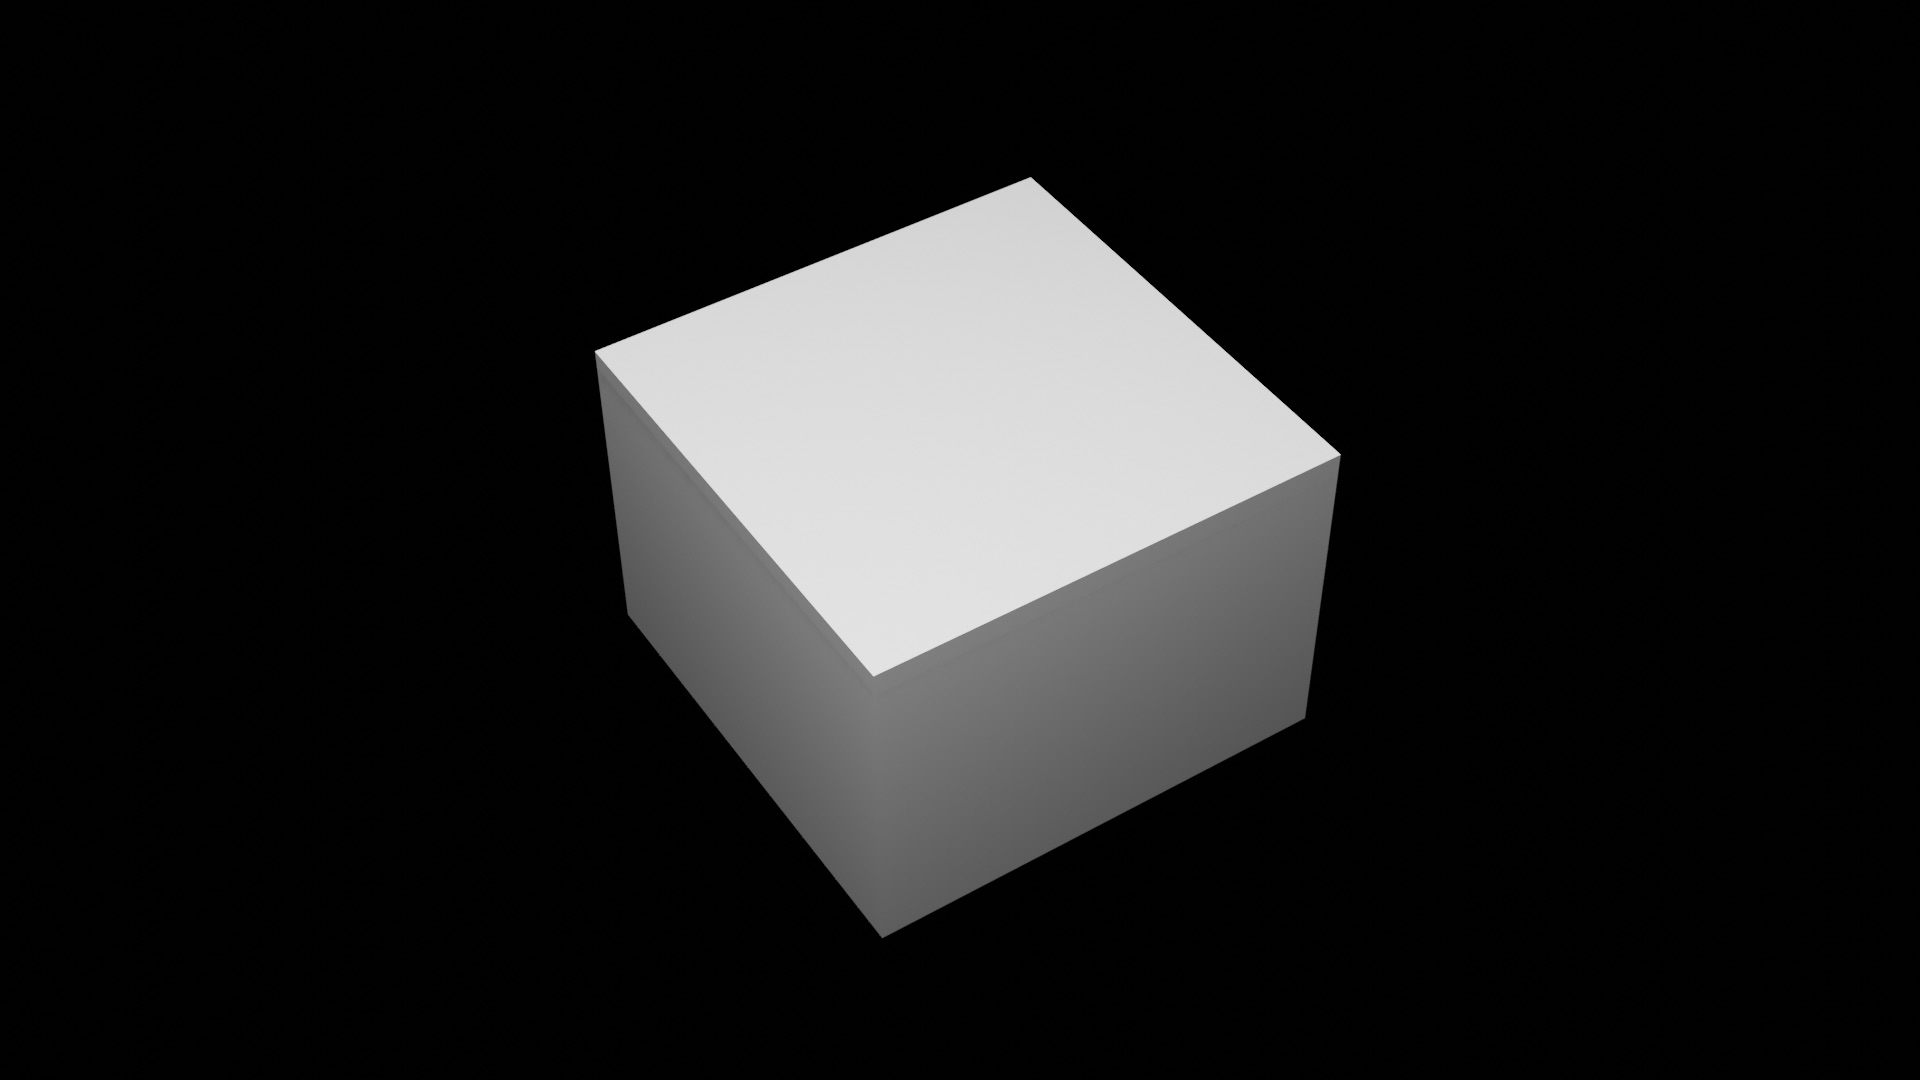 A white cube with a black backround behind it with shadows on its sides.